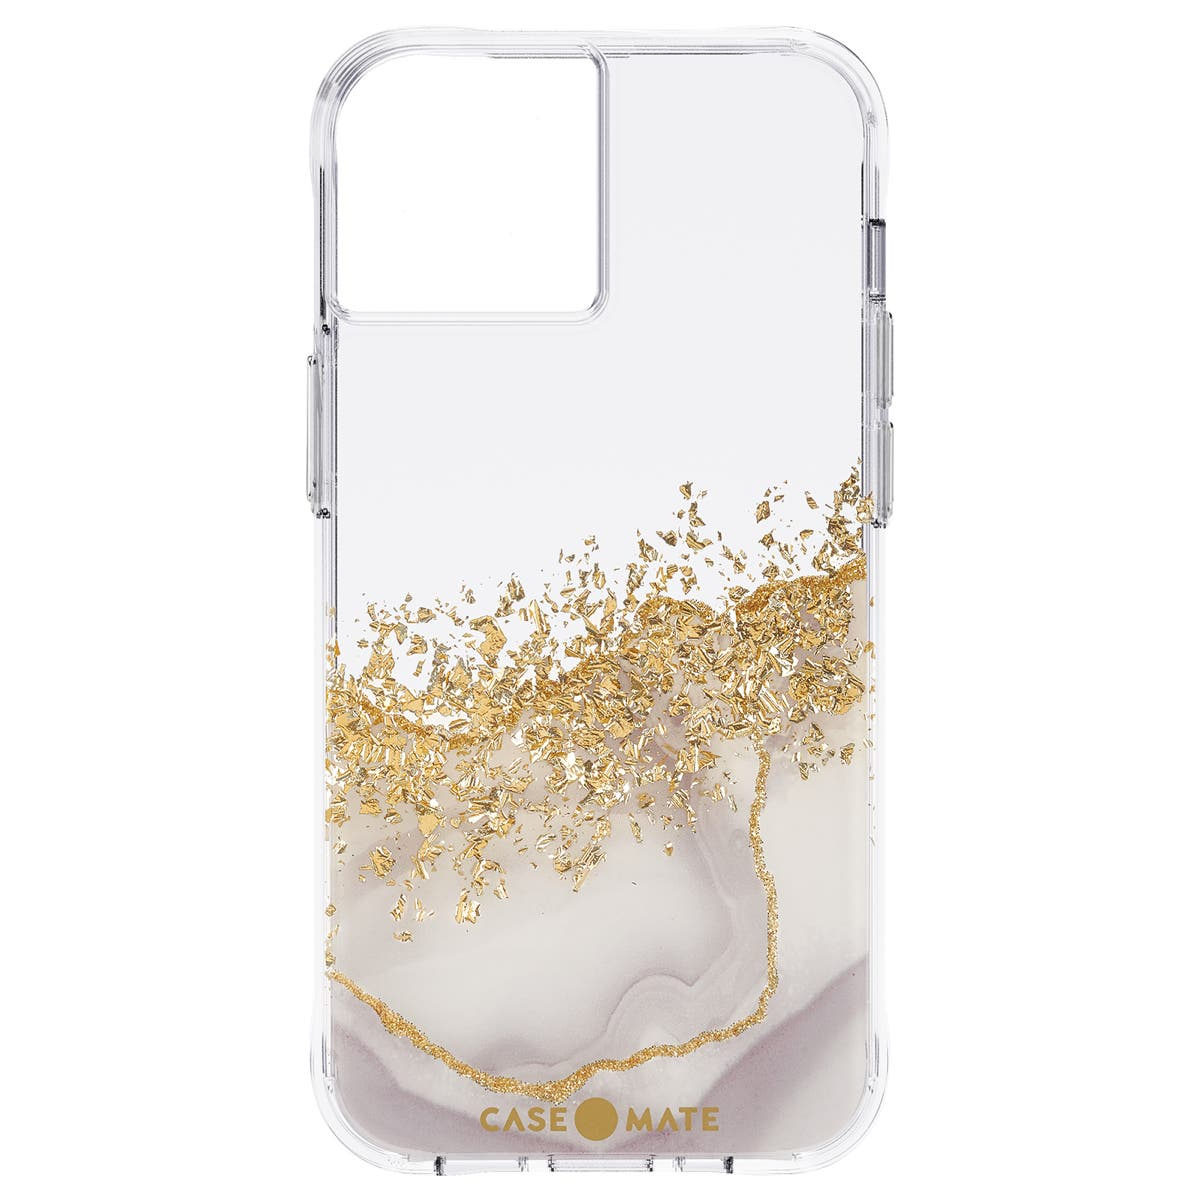 Case Mate Karat Marble Case for iPhone 13